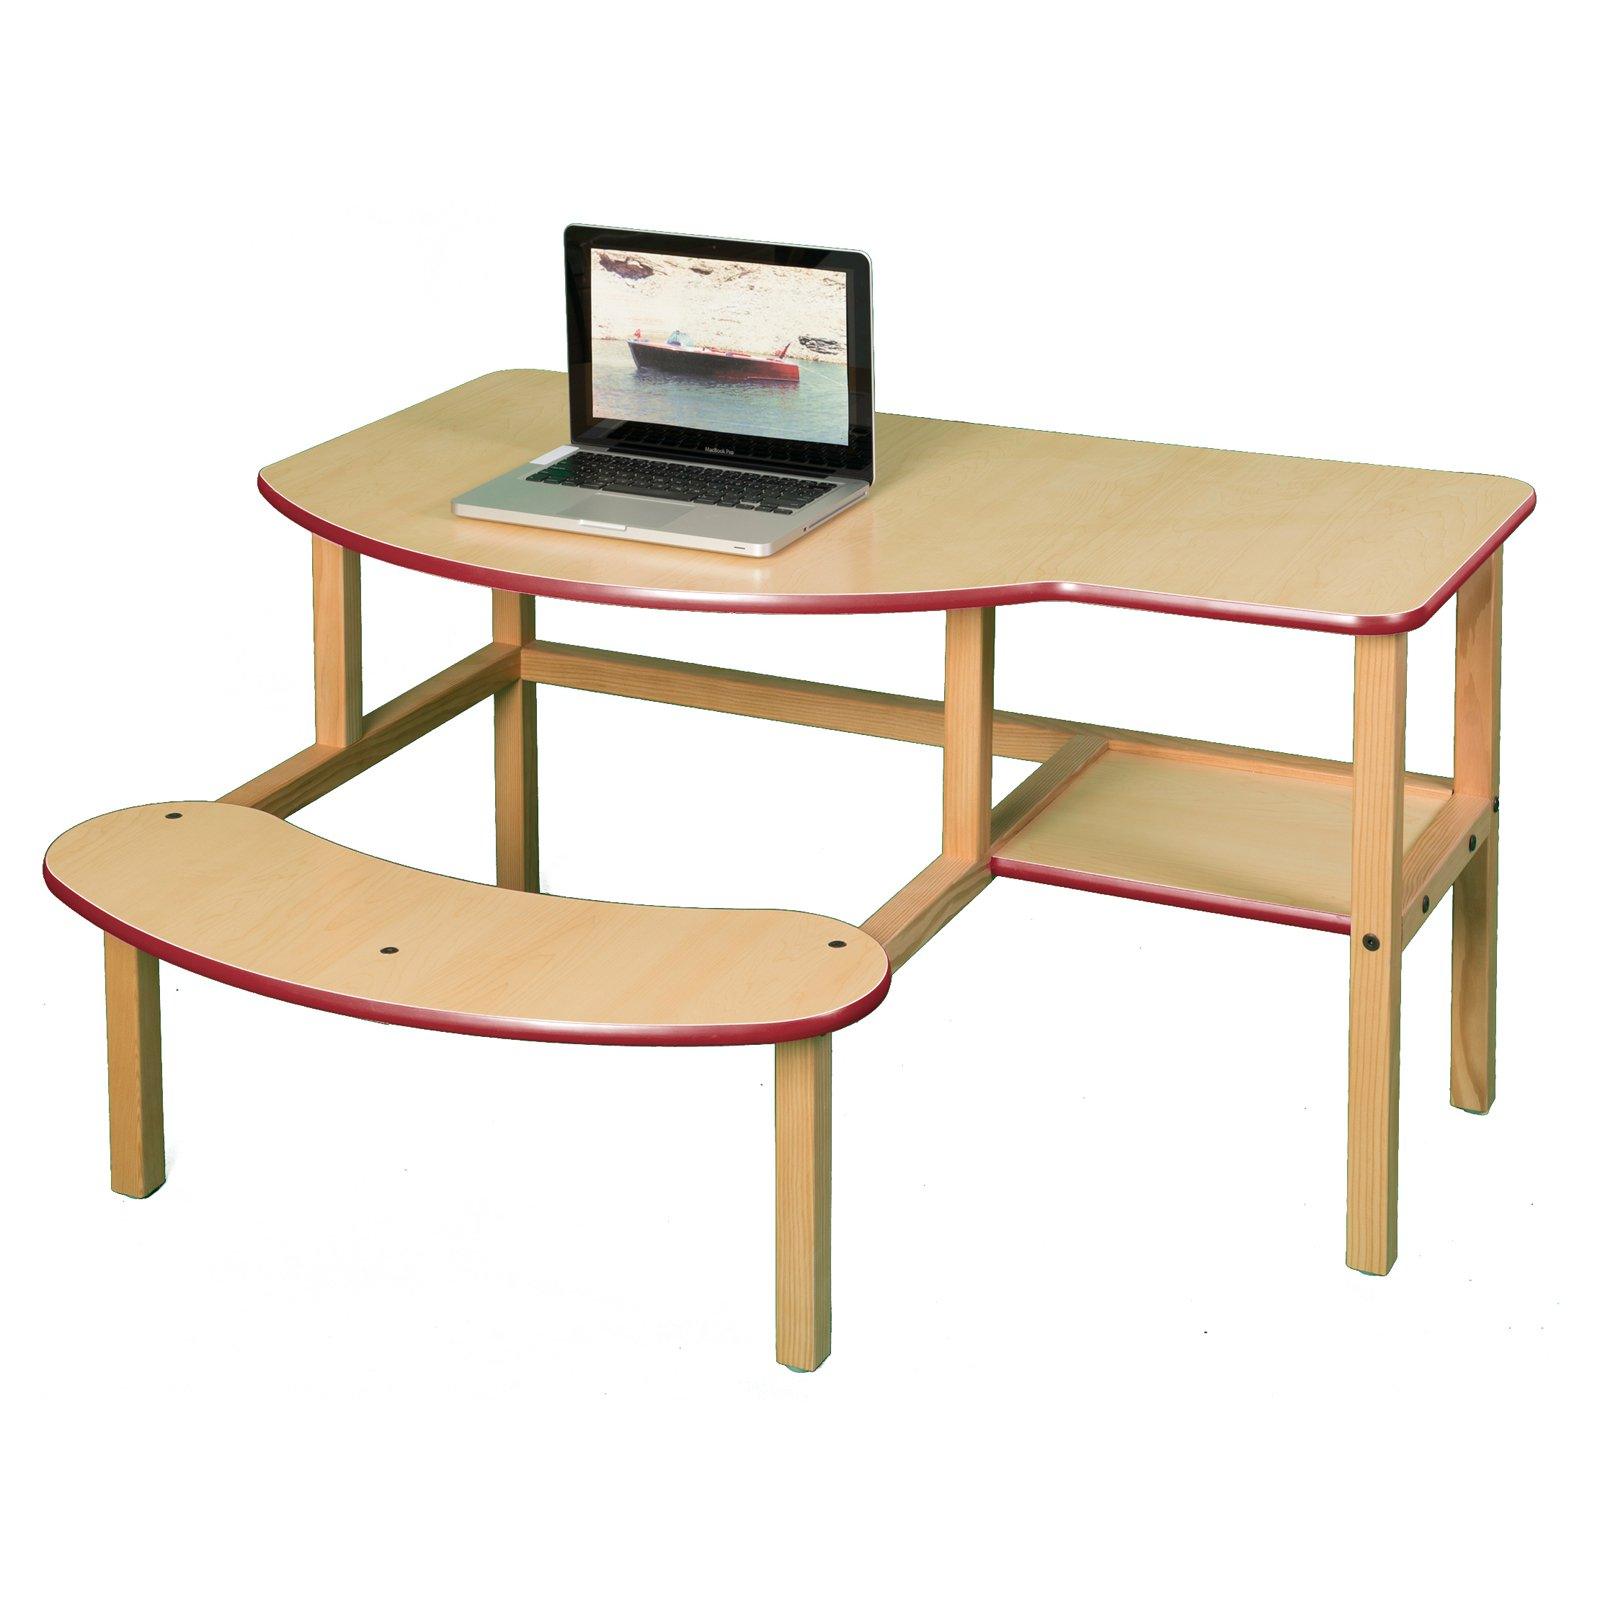 Wild Zoo Grade School Buddy Computer Desk - White